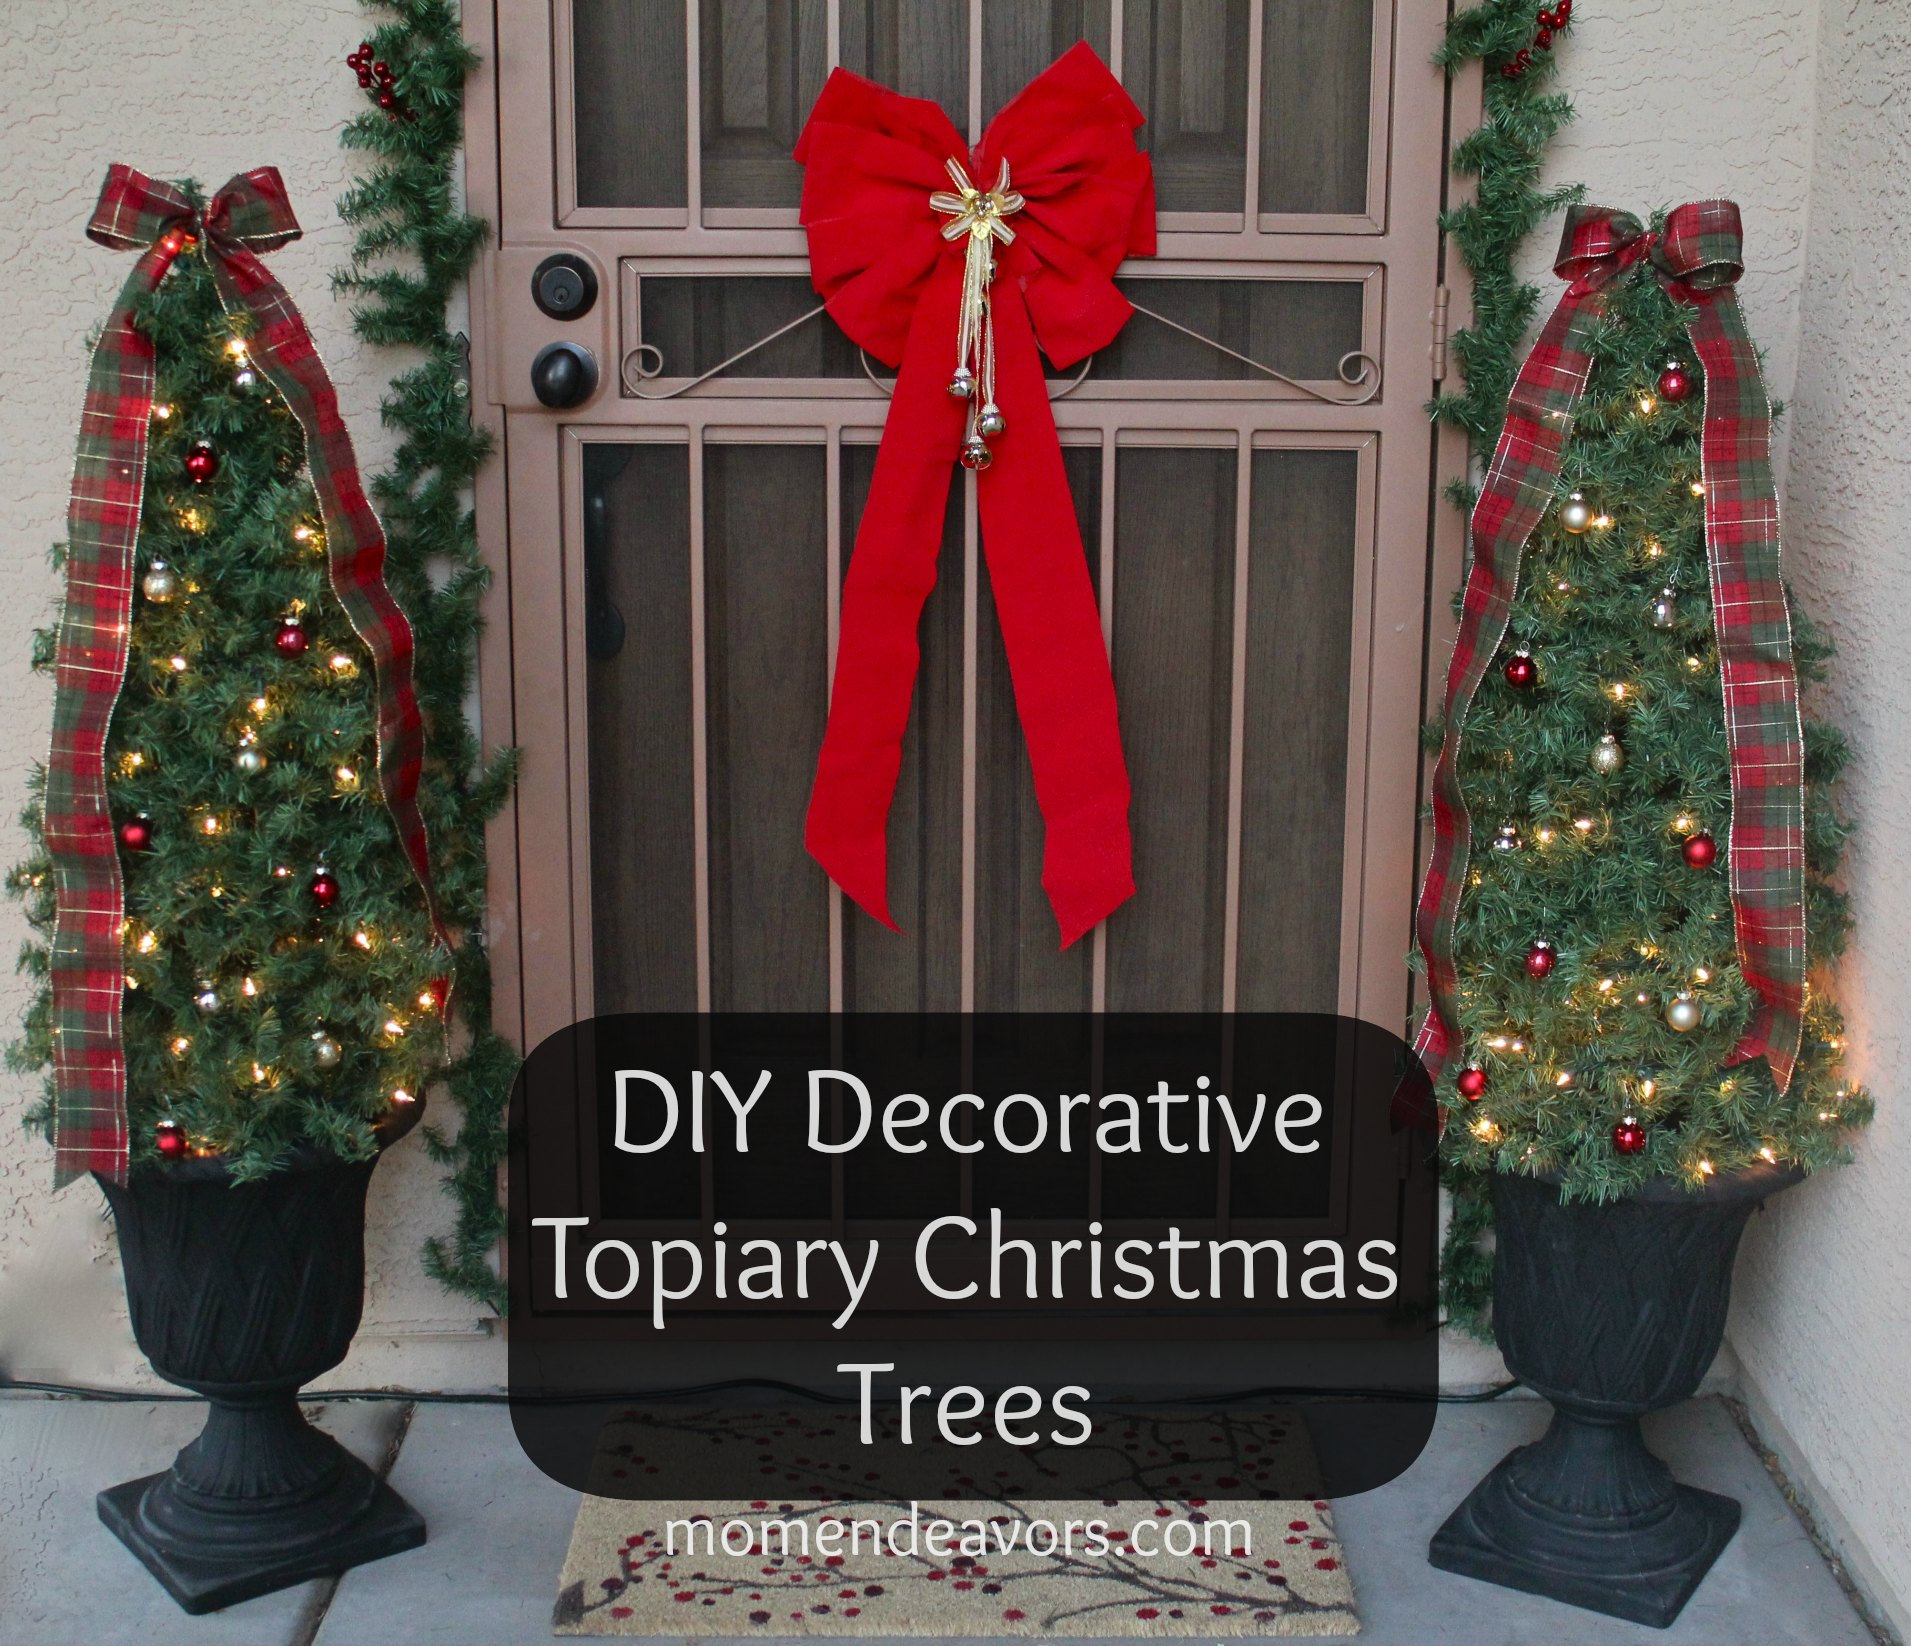 diy decorative topiary christmas trees - Topiary Christmas Decorations